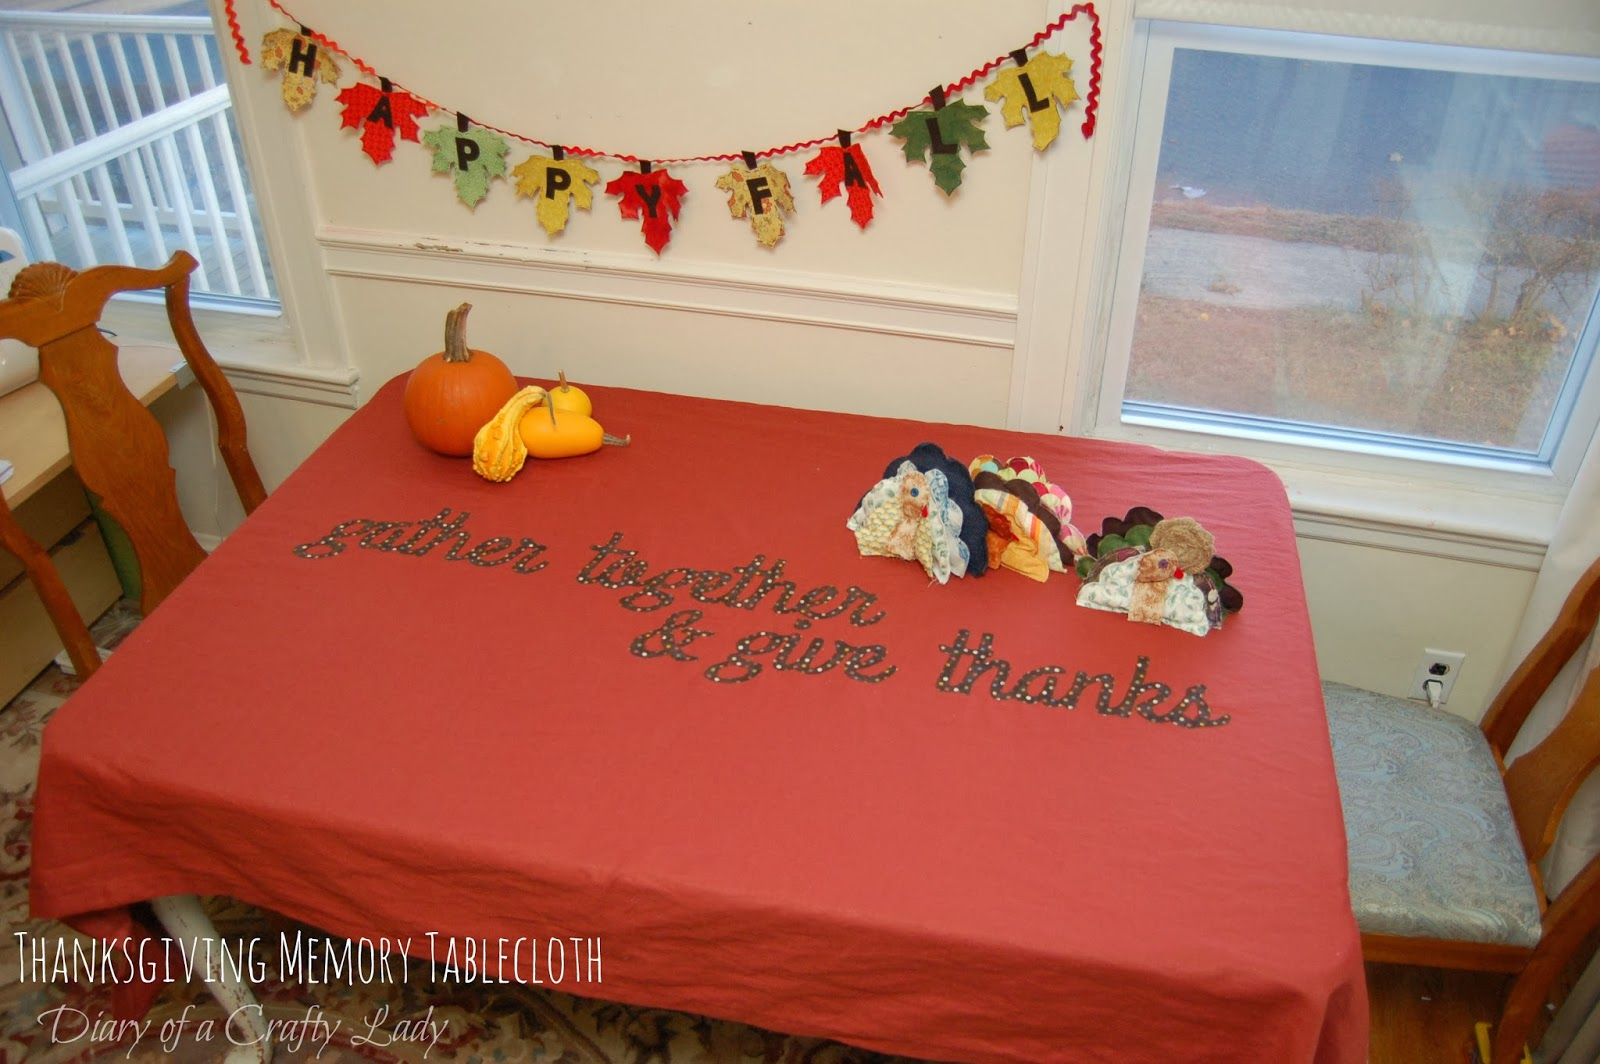 Diary Of A Crafty Lady Thanksgiving Memory Tablecloth - Thanksgiving-table-cloth